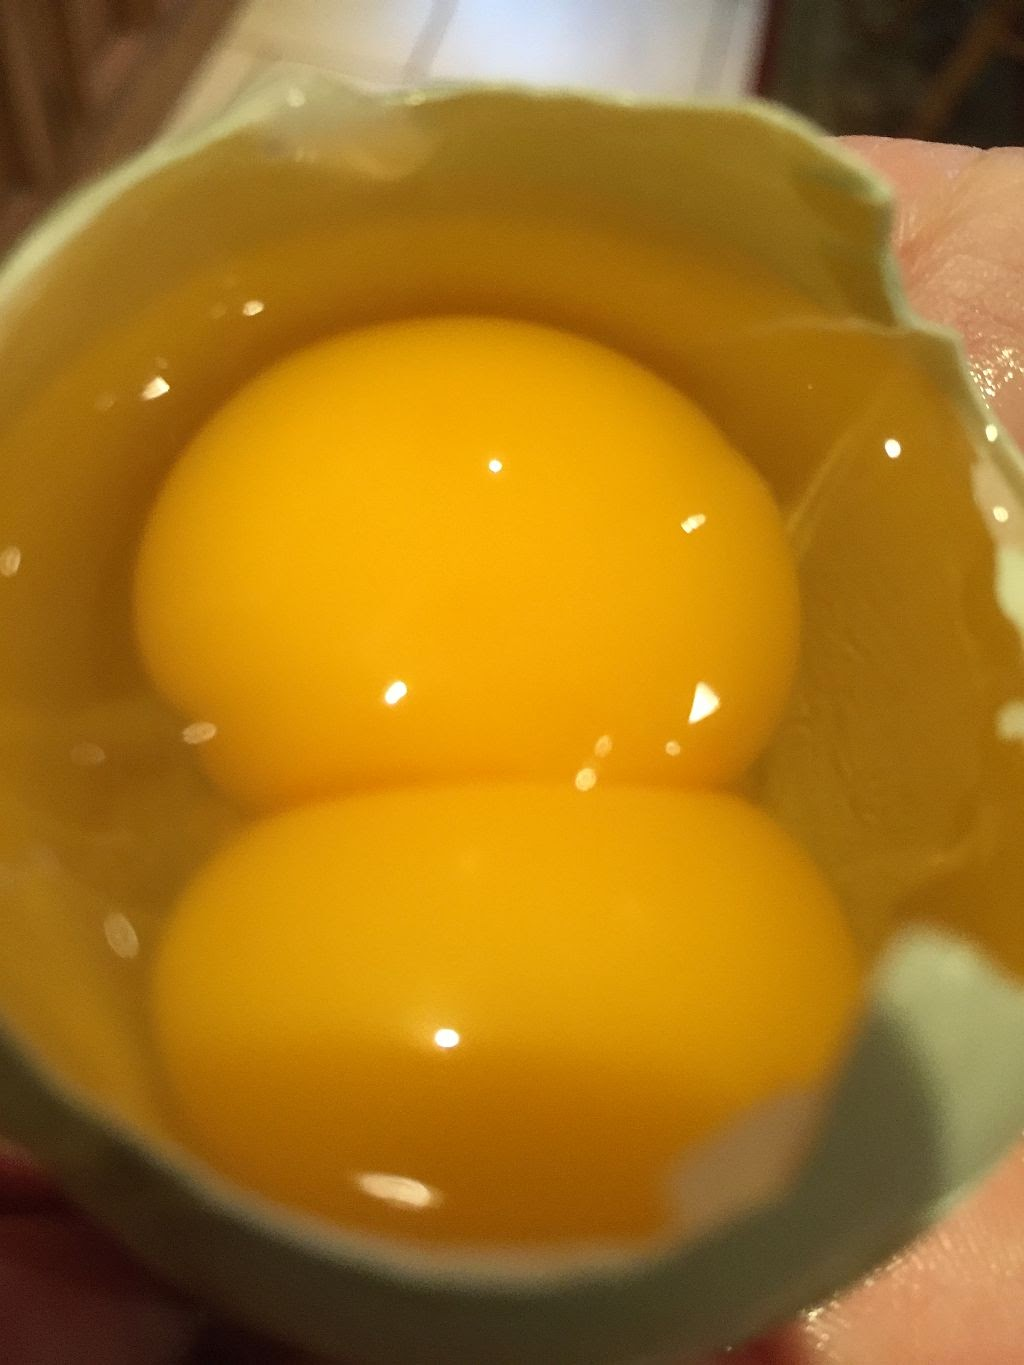 A double yoke egg, One Chicken's Blog at Cabelo in Limes Road, Tettenhall, Wolverhampton, WV6 8QZ